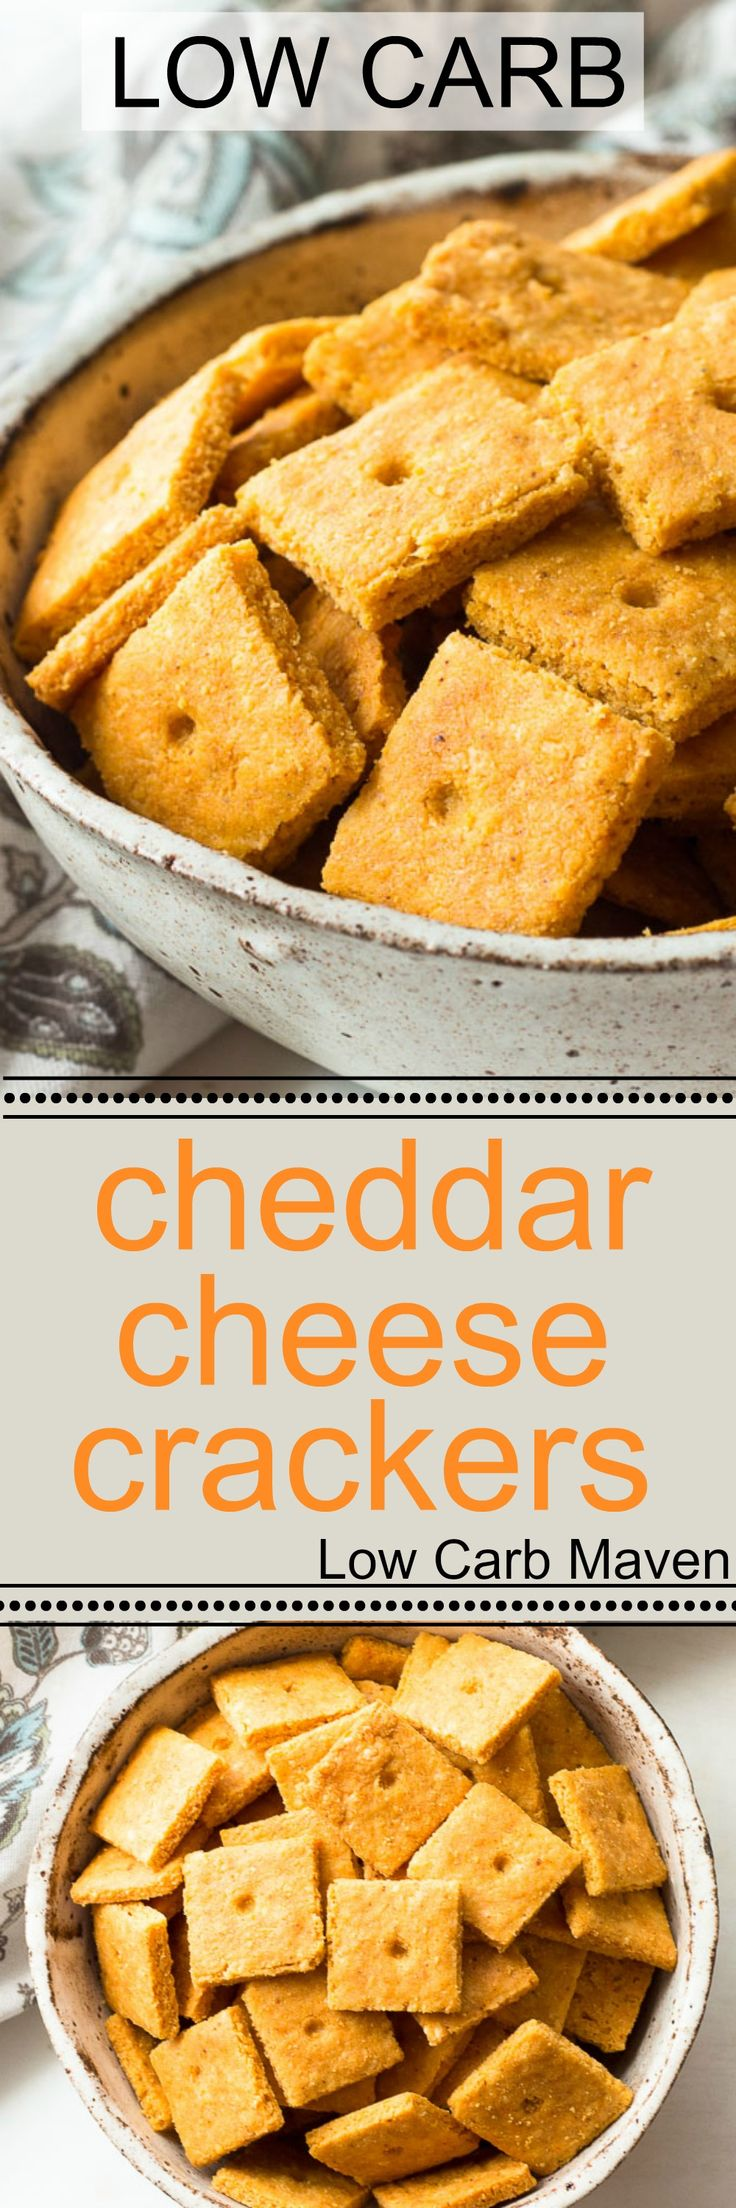 is cheddar cheese healthy